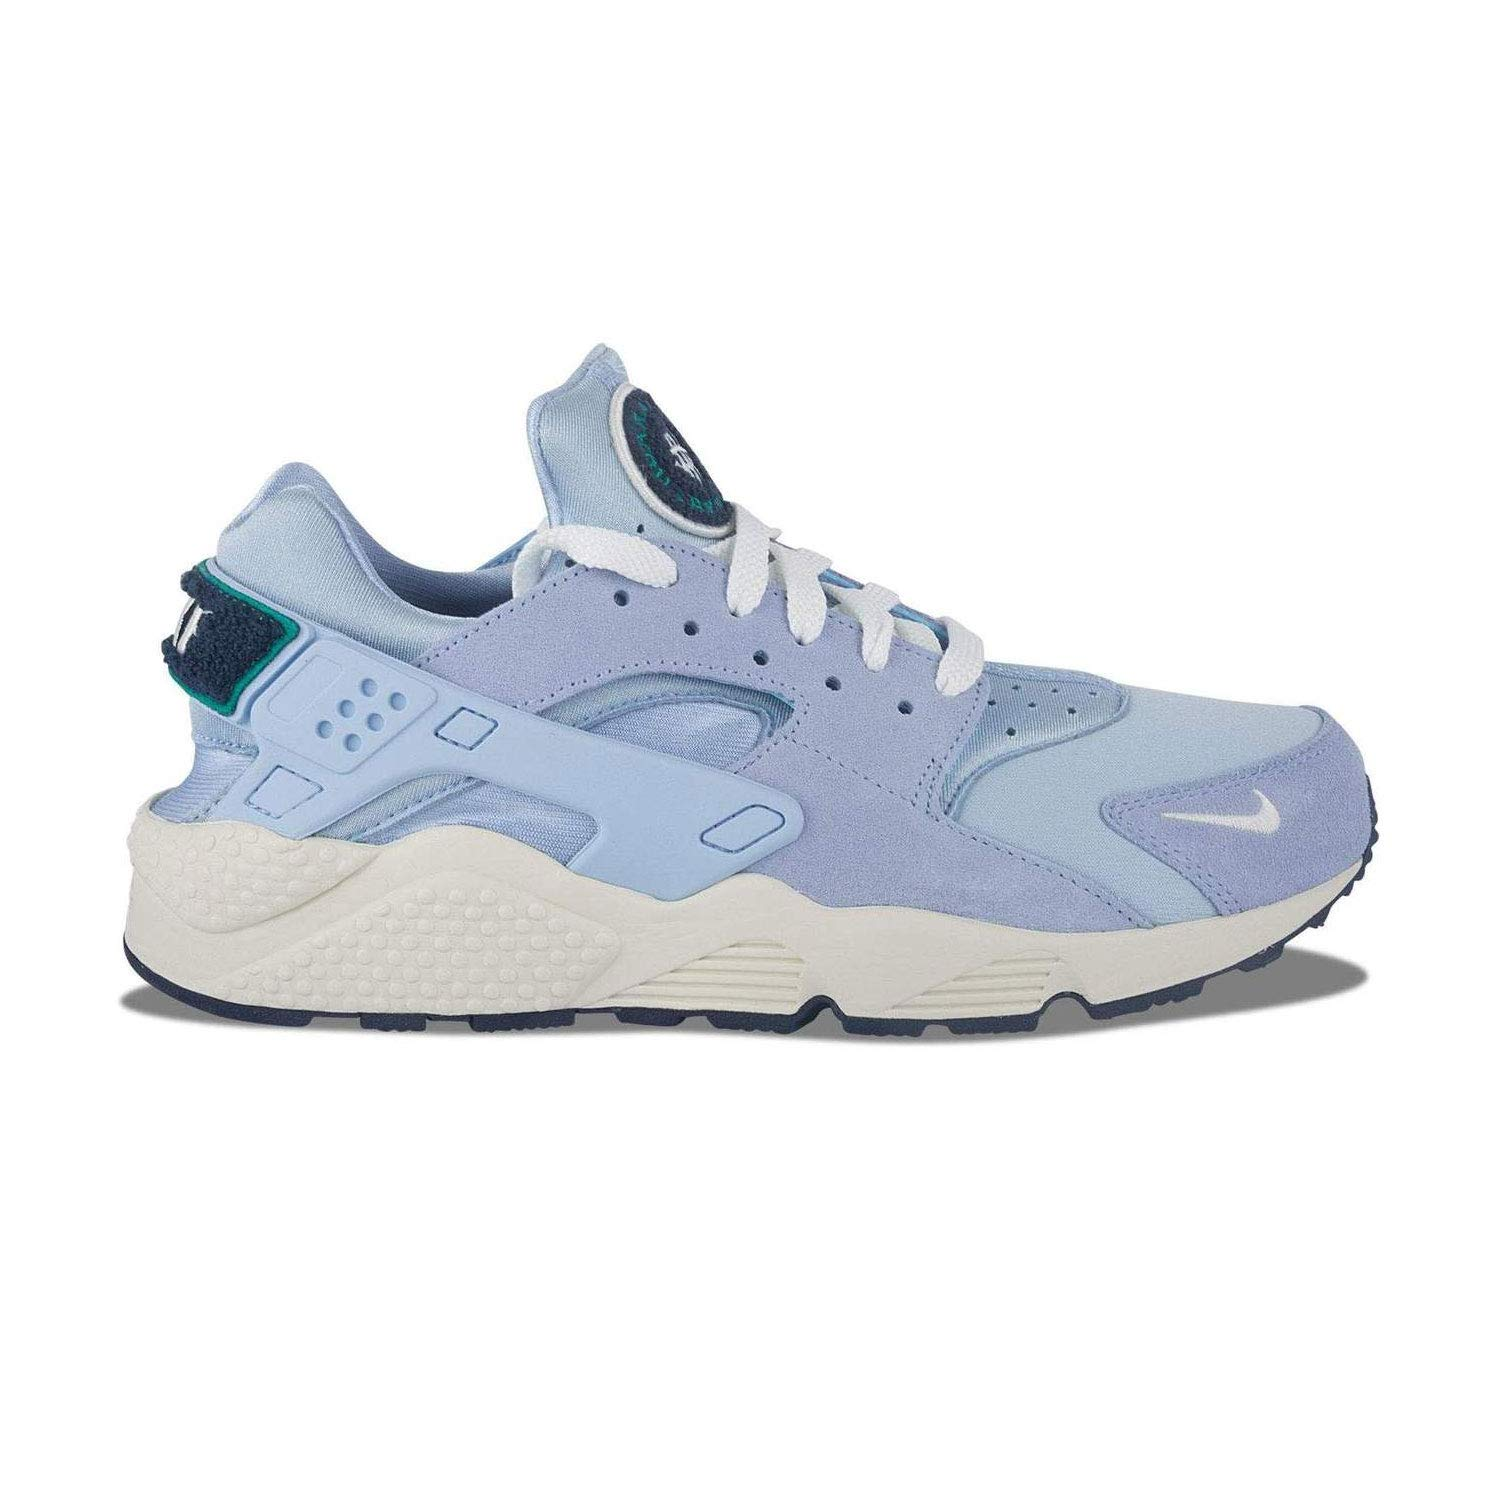 sports shoes c4c12 d6815 Galleon - Nike Huarache Run Premium Mens Shoes Royal Tinit Sail Blue Void  704830-403 (9 M US)